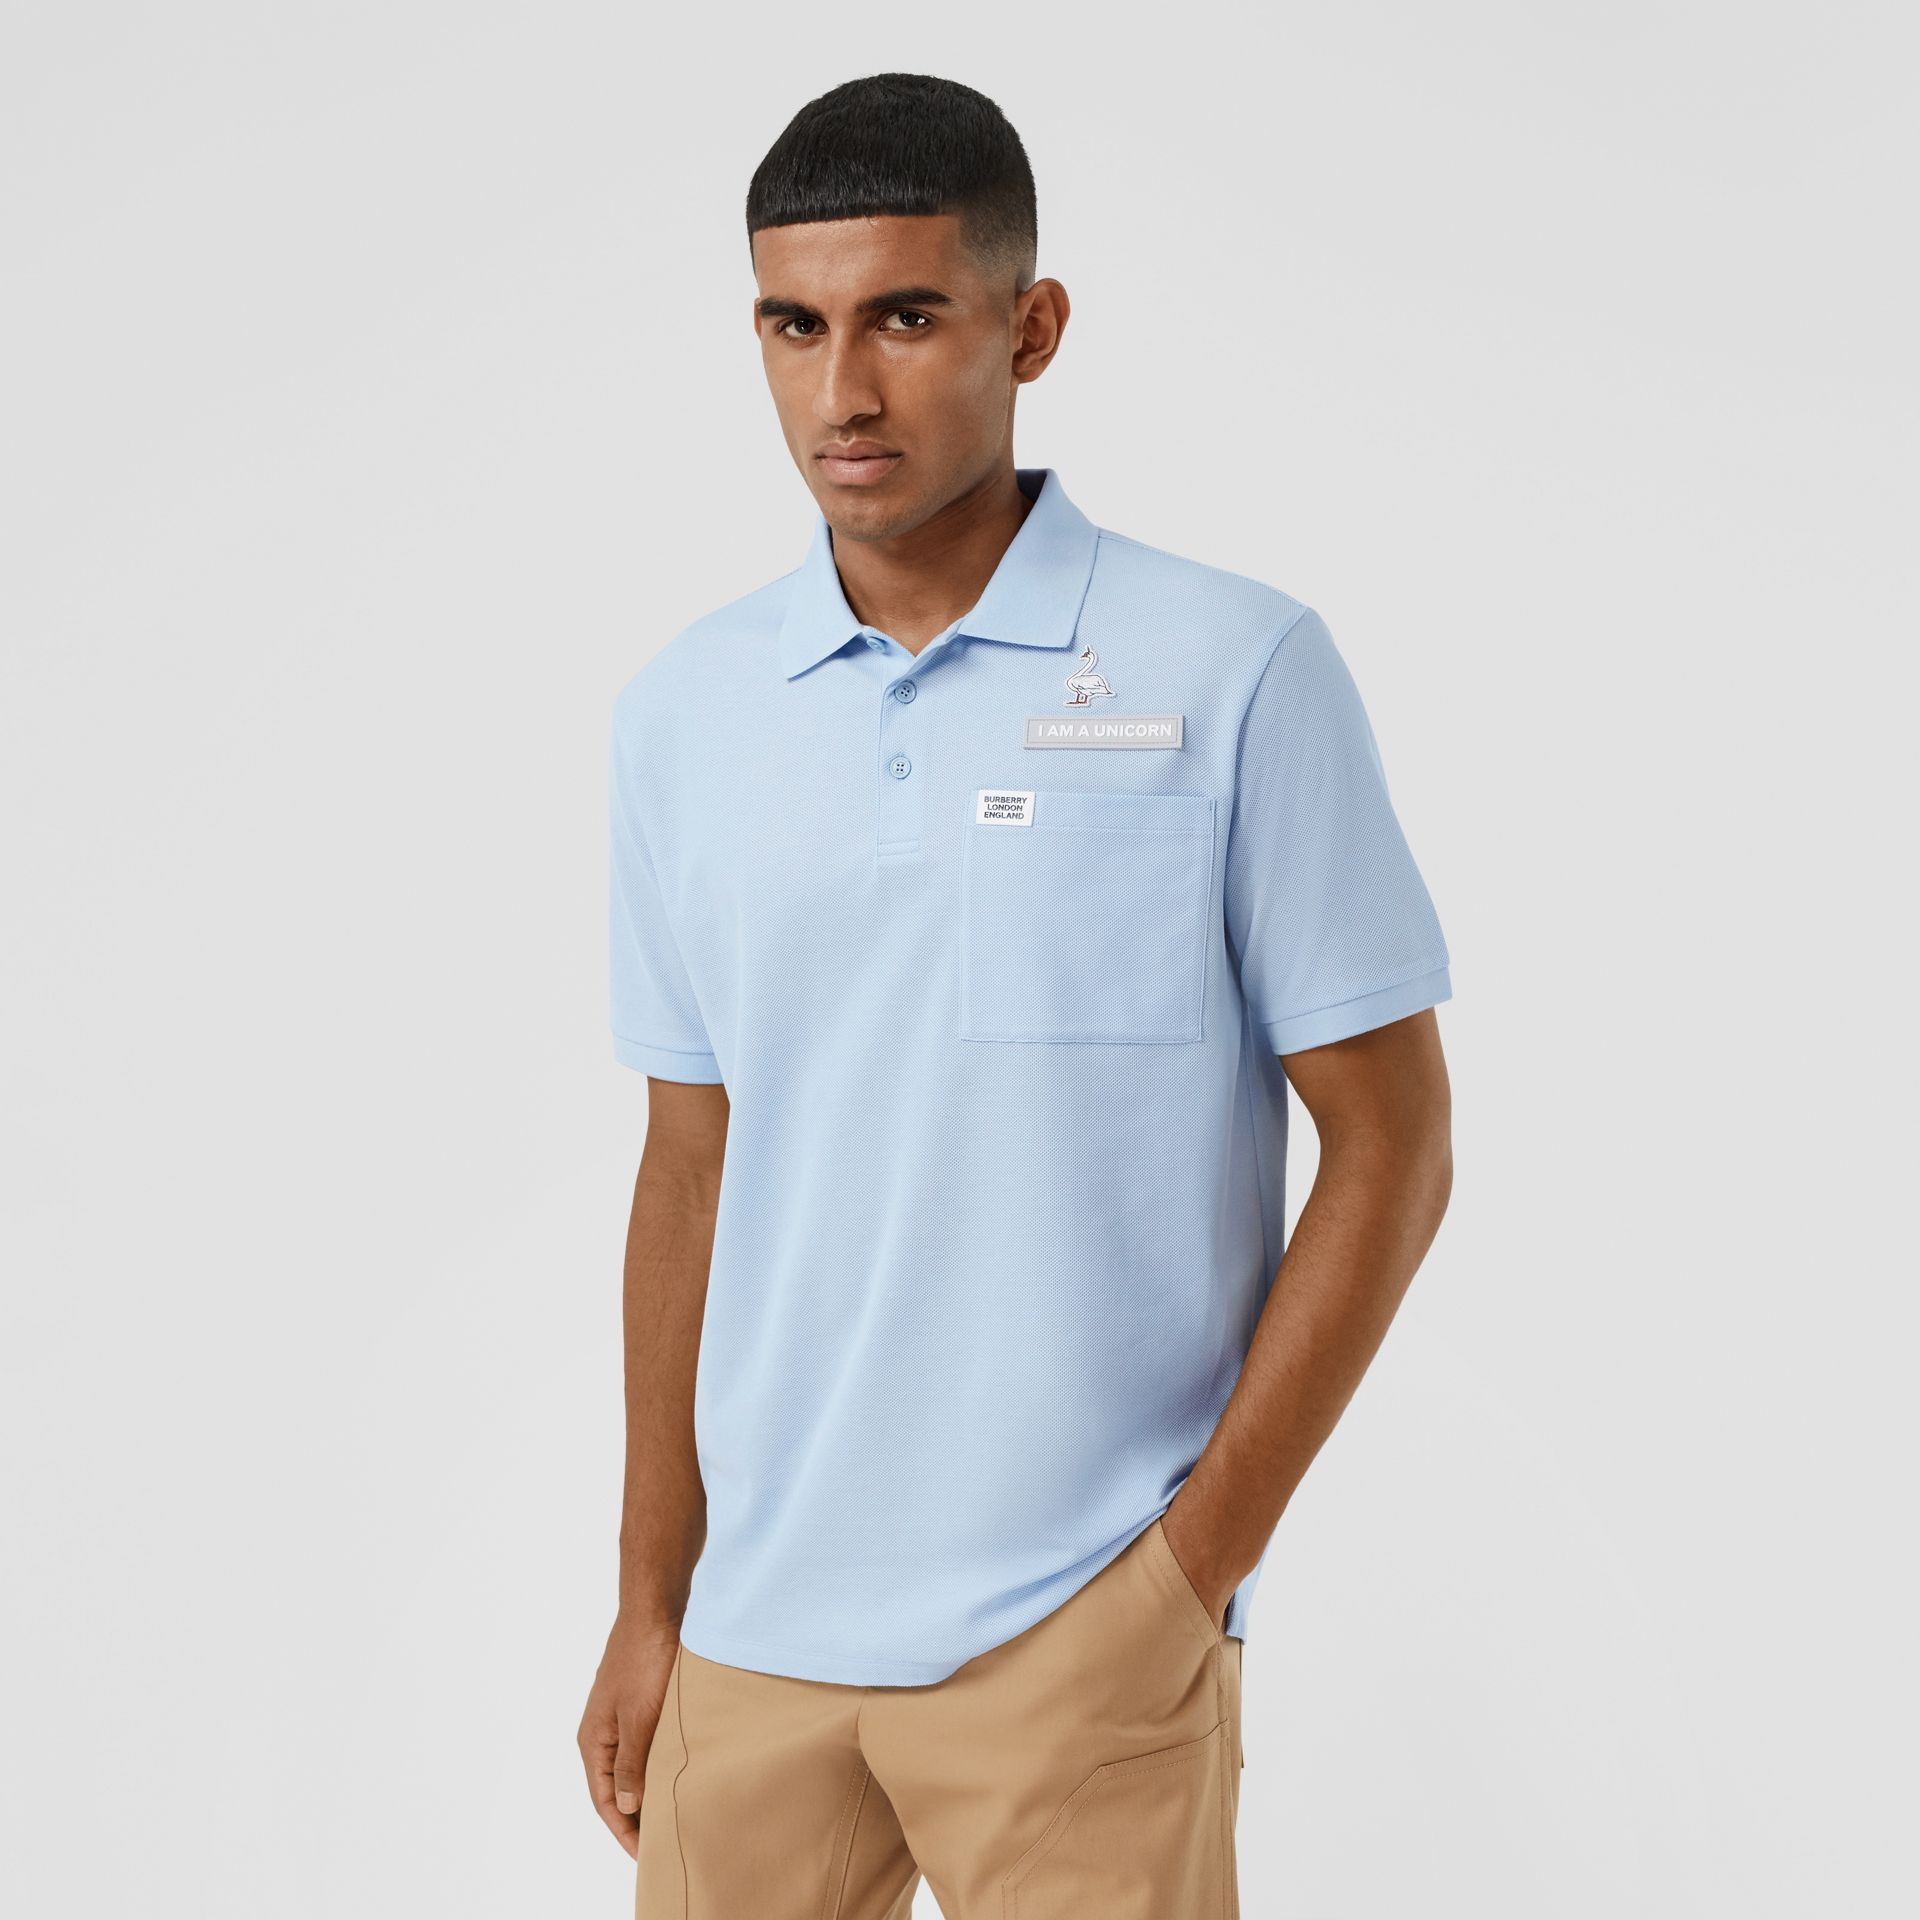 Swan and Slogan Appliqué Cotton Polo Shirt in Pale Blue - Men | Burberry - gallery image 0